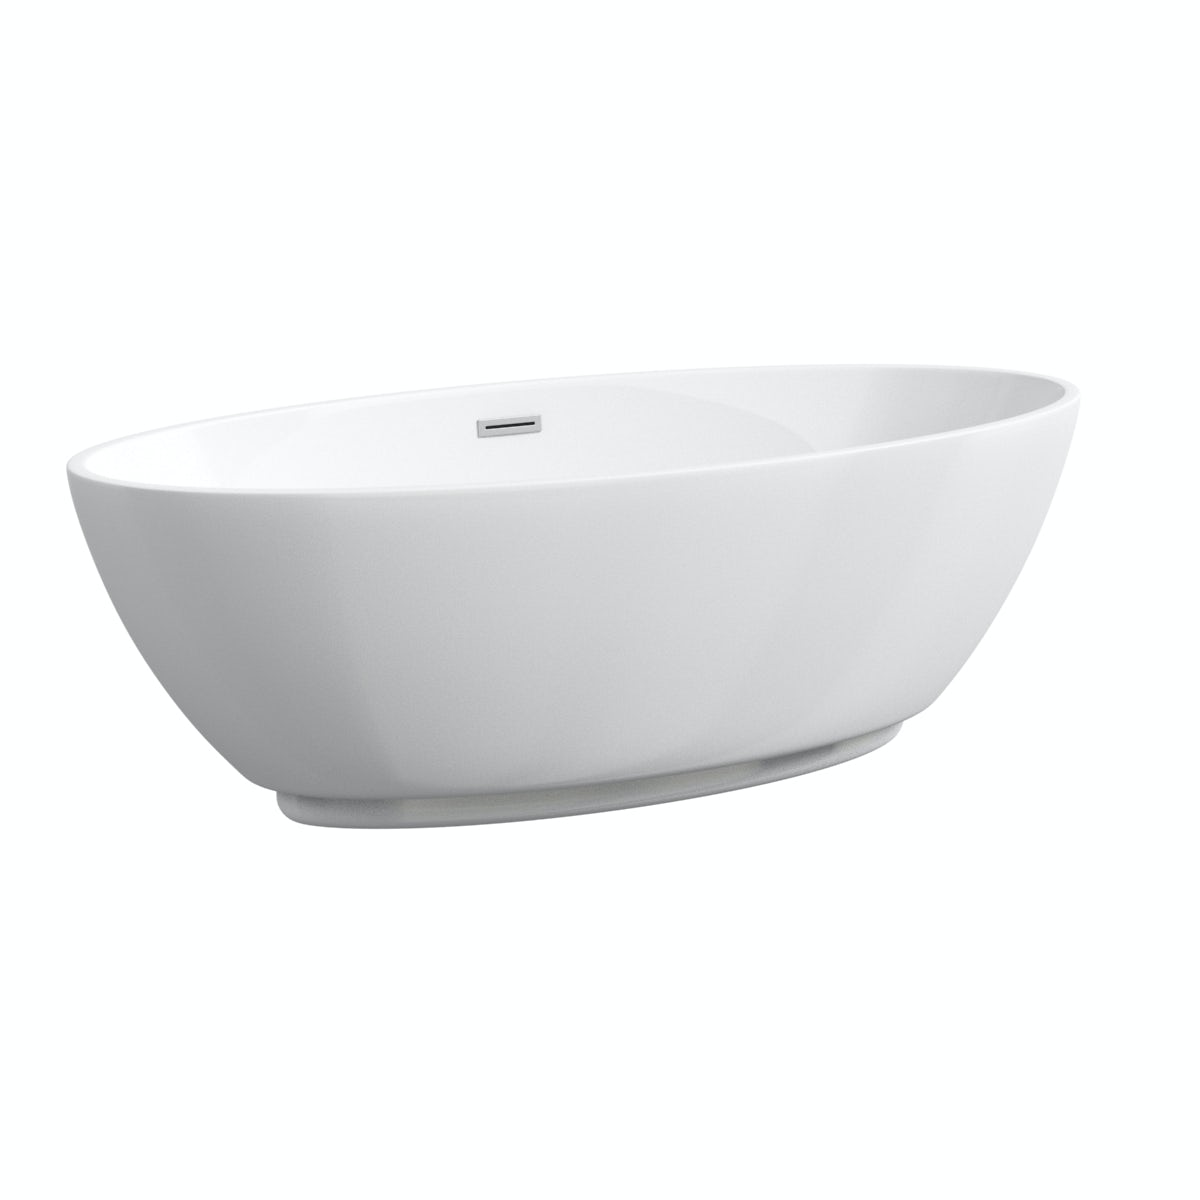 Bathroom dimensions meters - Mode Harrison Freestanding Bath 1790 X 810